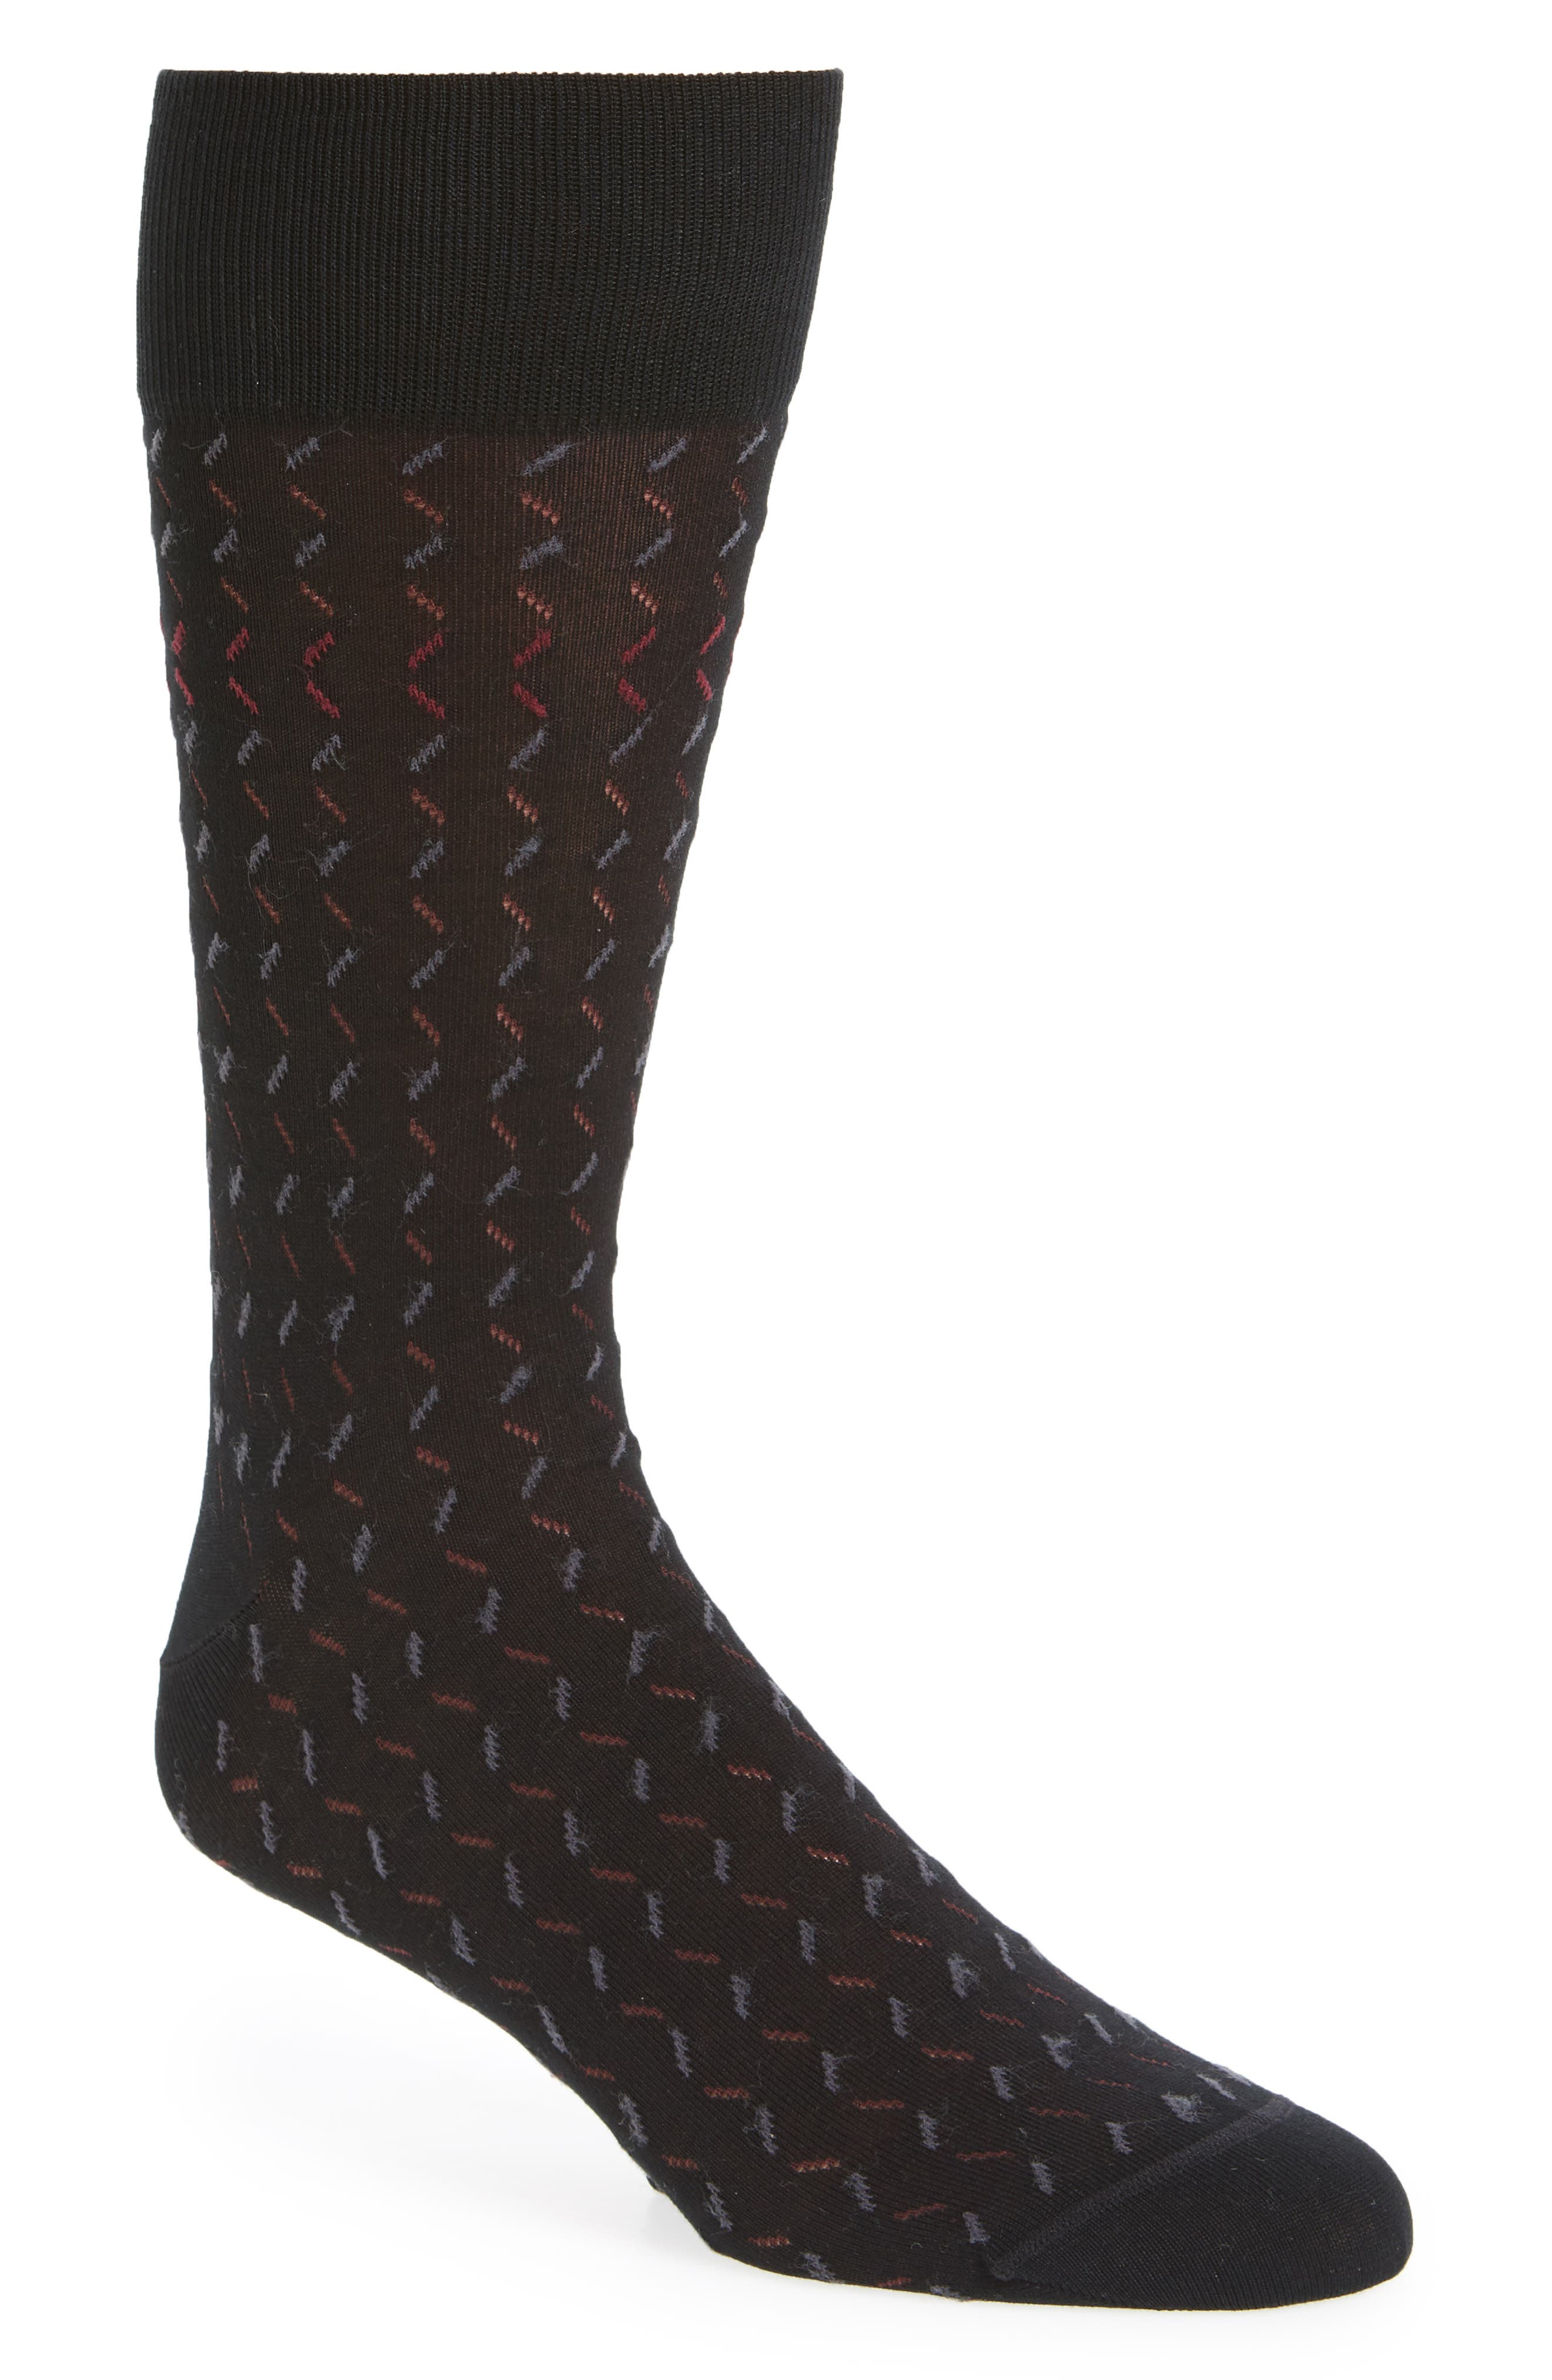 Alternate Image 1 Selected - John W. Nordstrom® Dash Socks